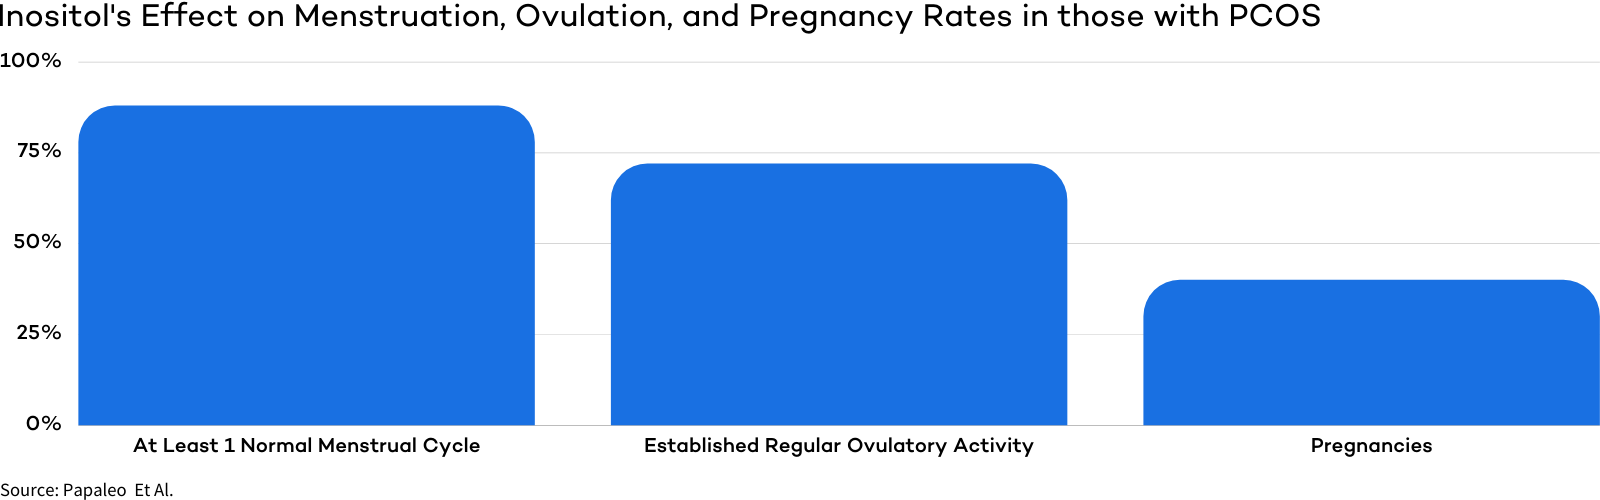 Inositol's Effect on Menstruation, Ovulation, and Pregnancy Rates in those with PCOS